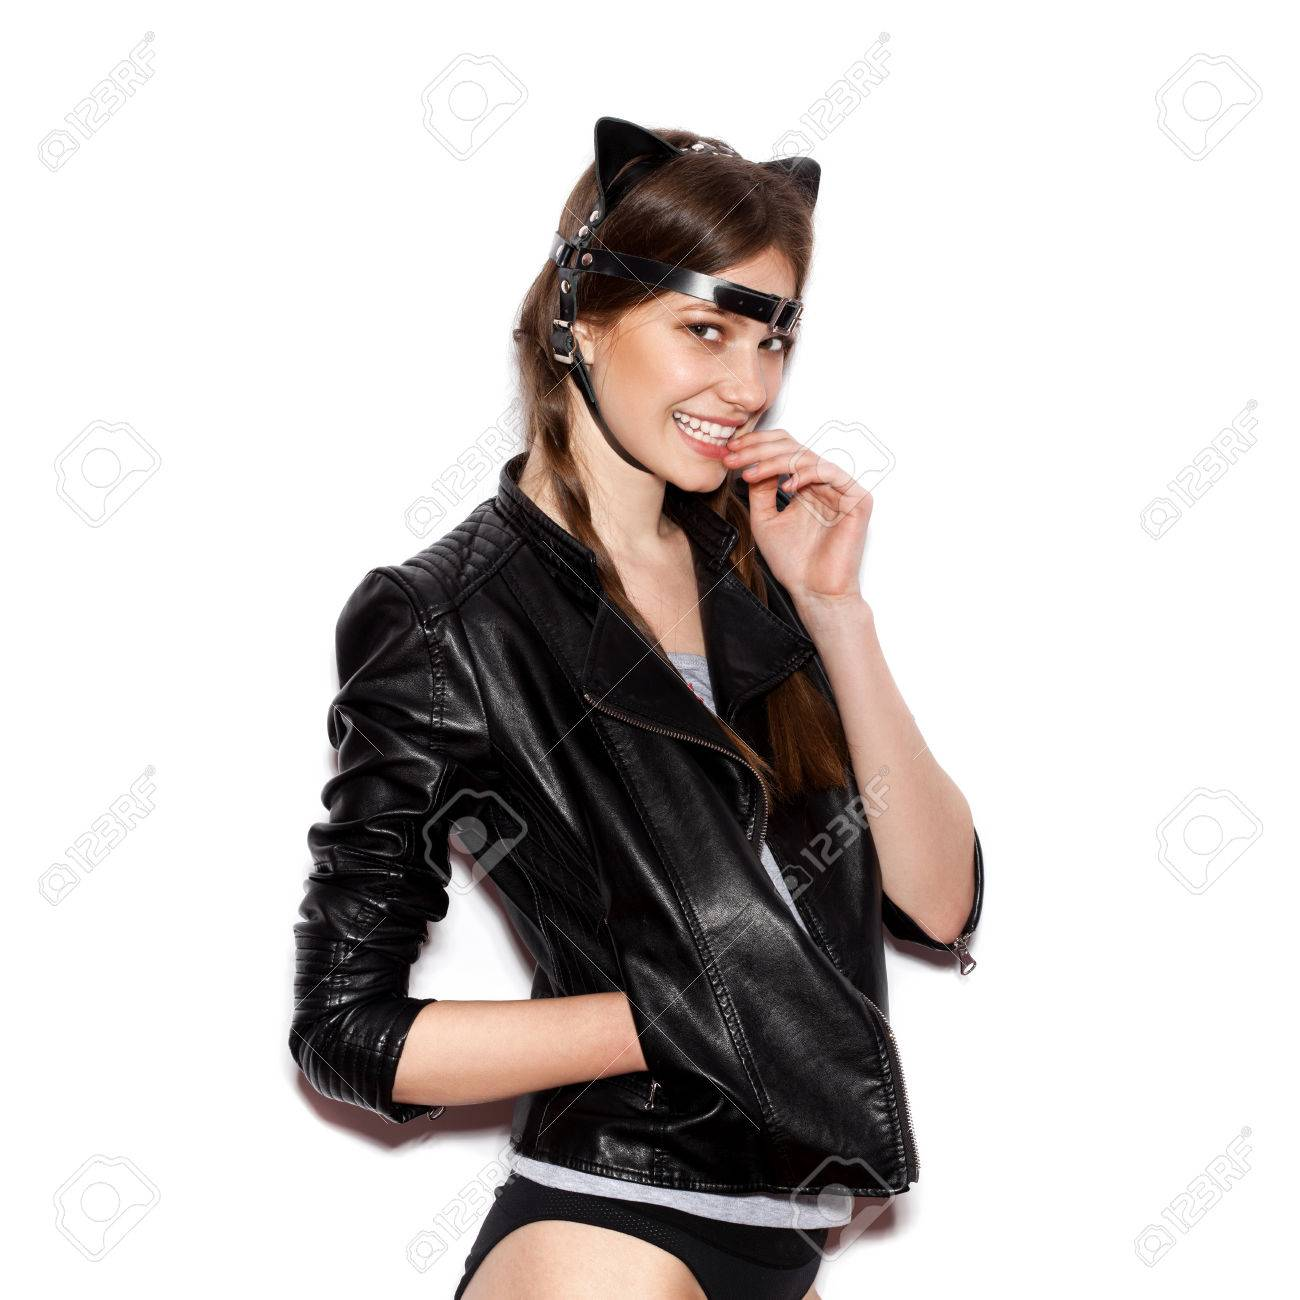 Trucco Halloween Catwoman.Funny Girl Represents As Small Cat Woman With Bright Makeup